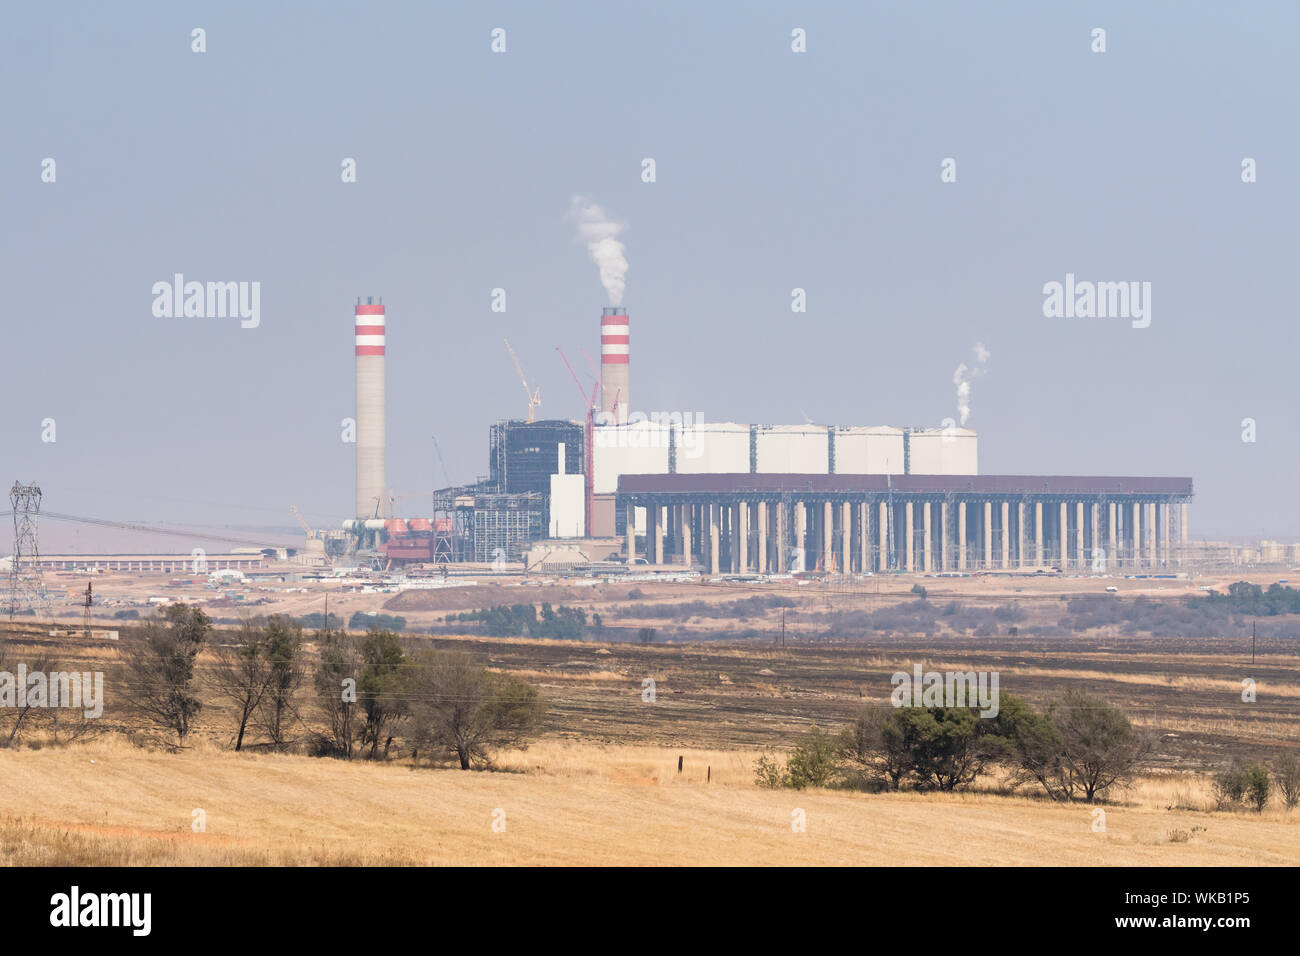 coal fired power station belonging to state run owned enterprise ESKOM on the outskirts of Johannesburg,Gauteng,South Africa billowing smoke pollution Stock Photo